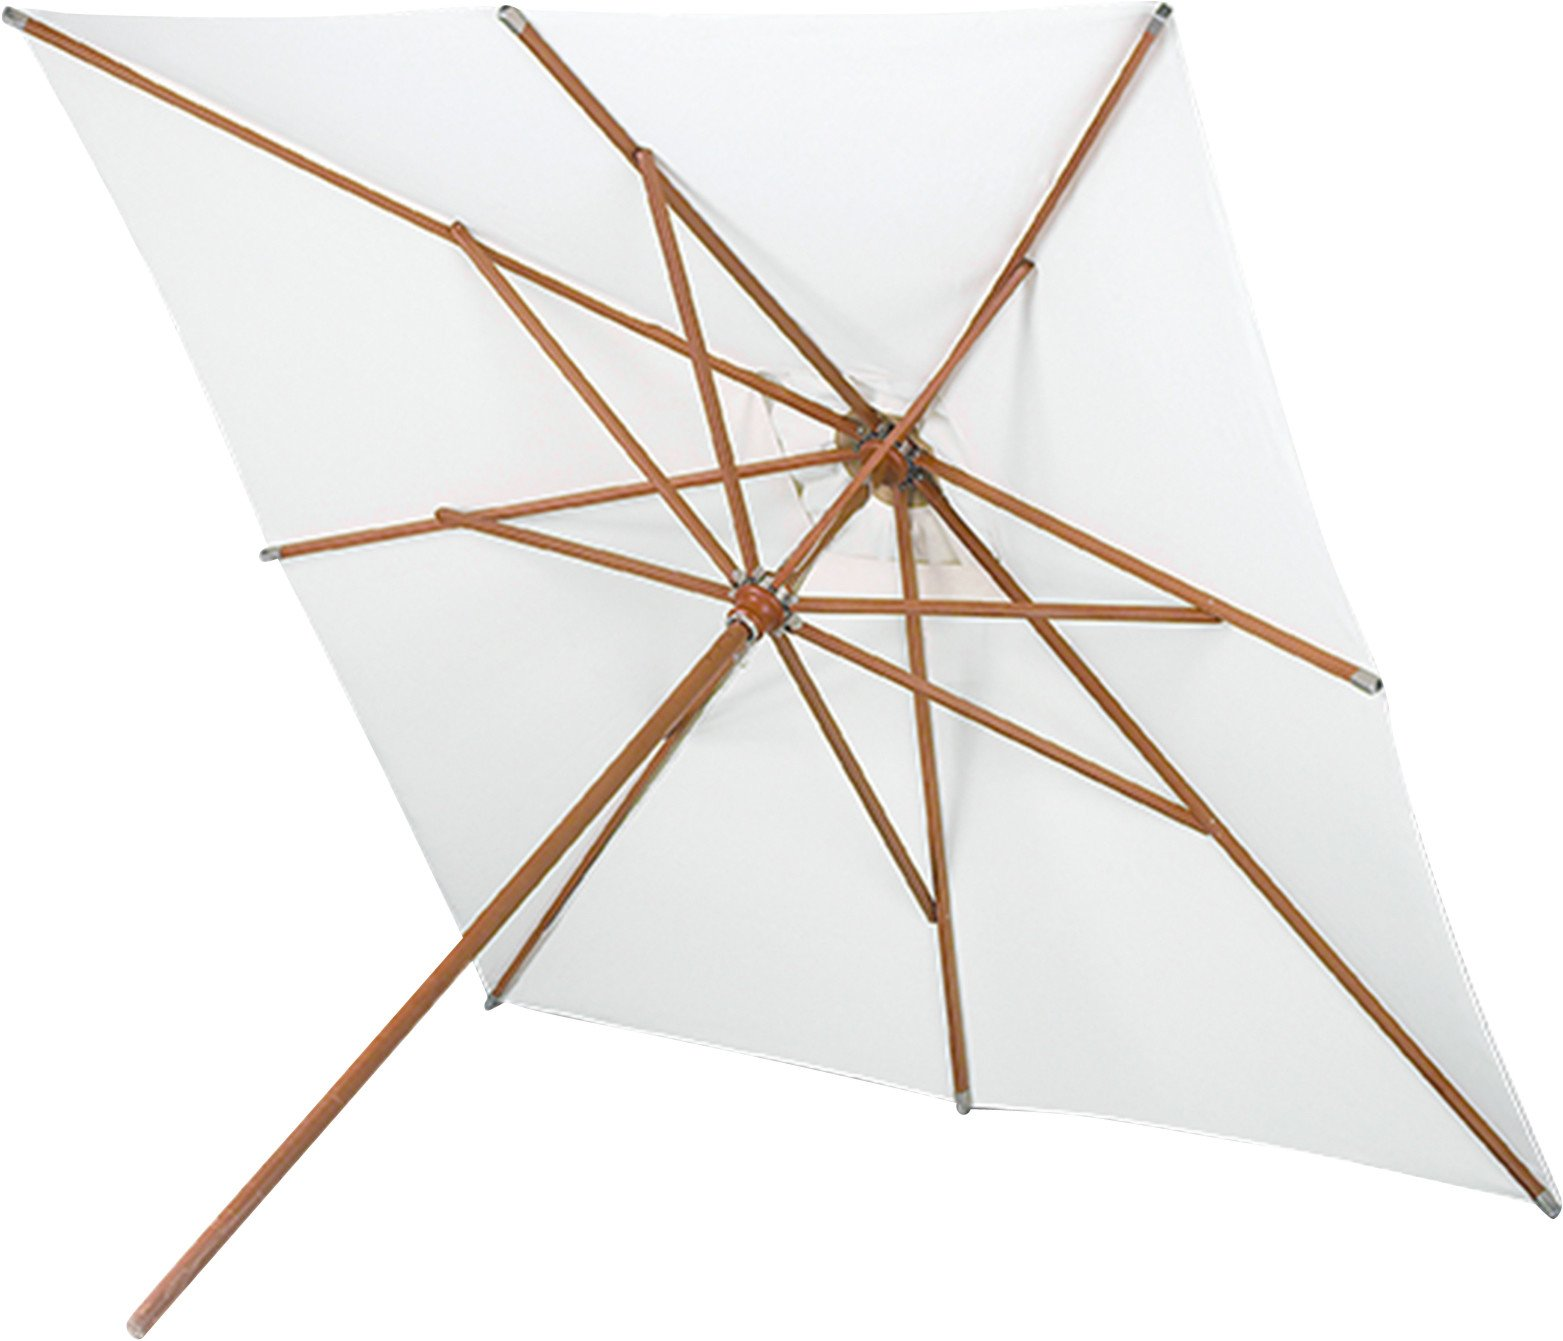 Messina Umbrella, Skagerak